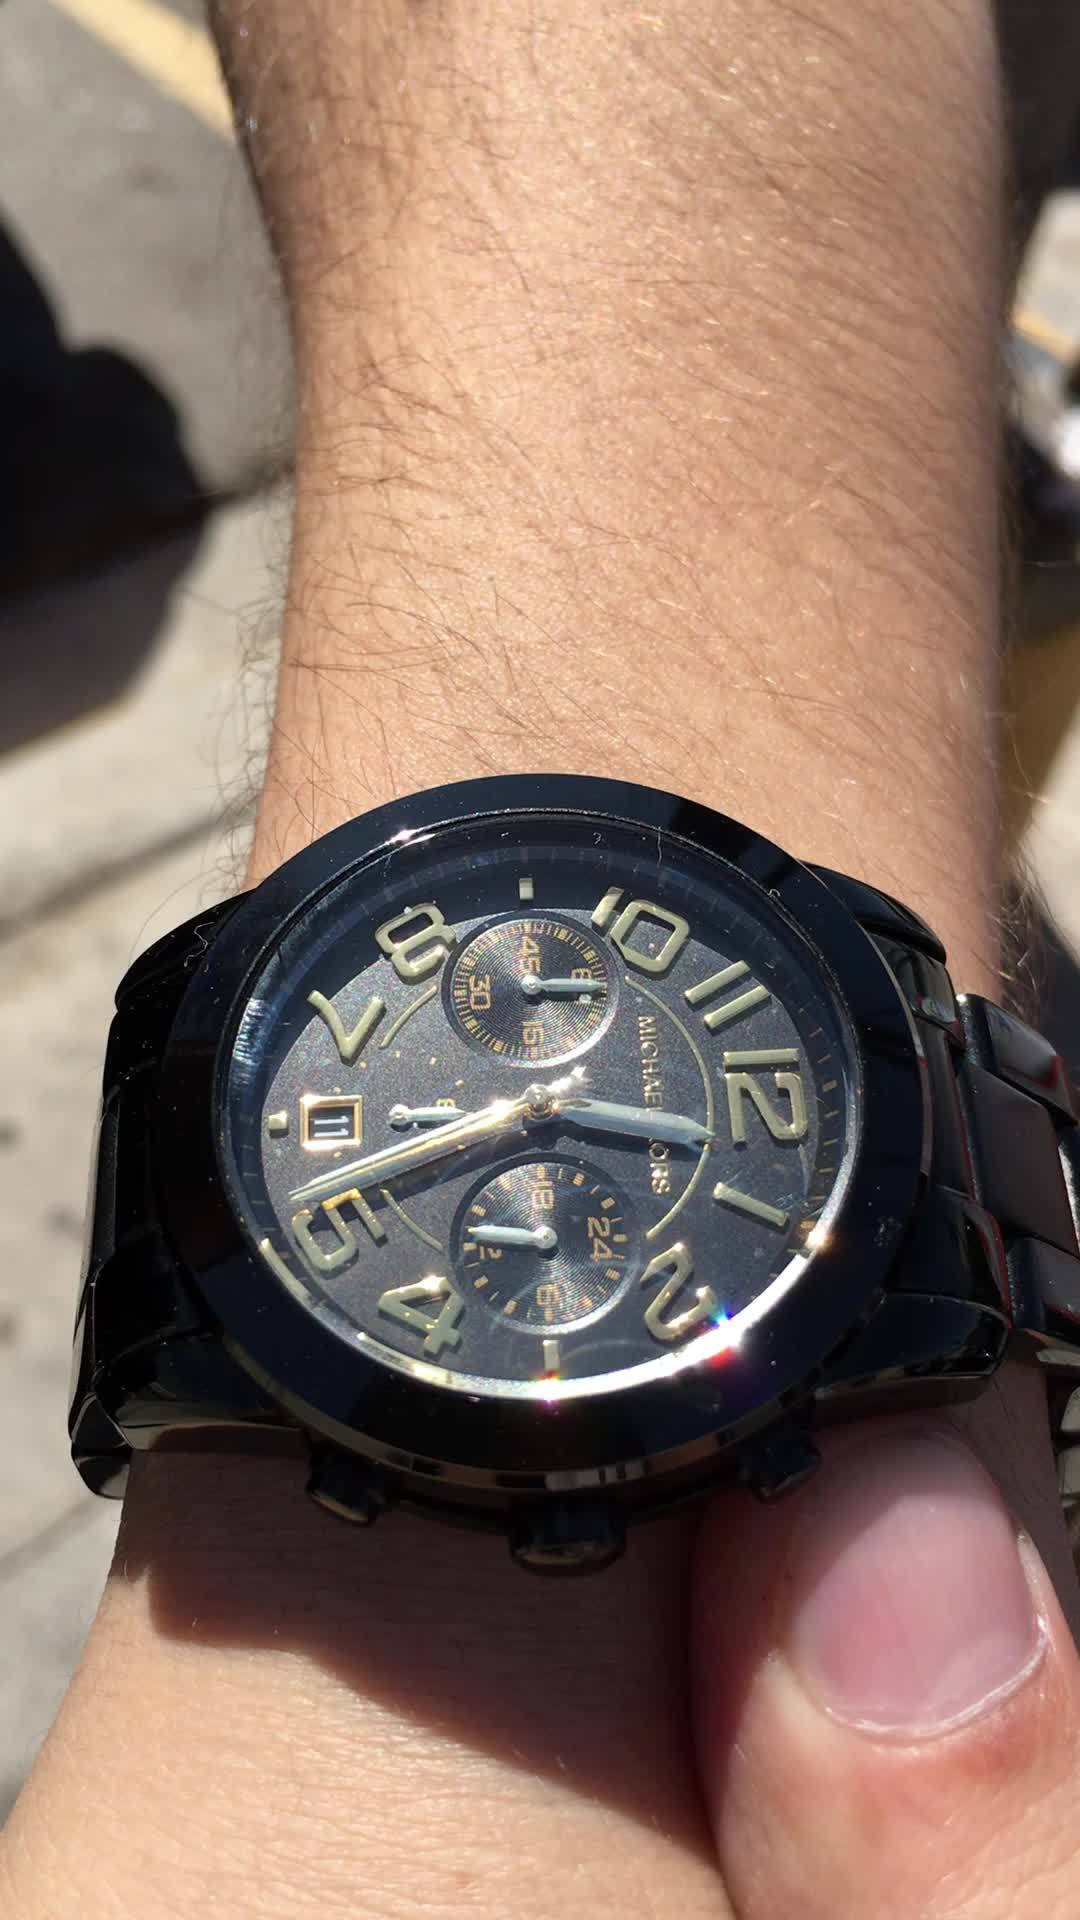 mildlyinteresting, The Sunlight effect on this watch GIFs